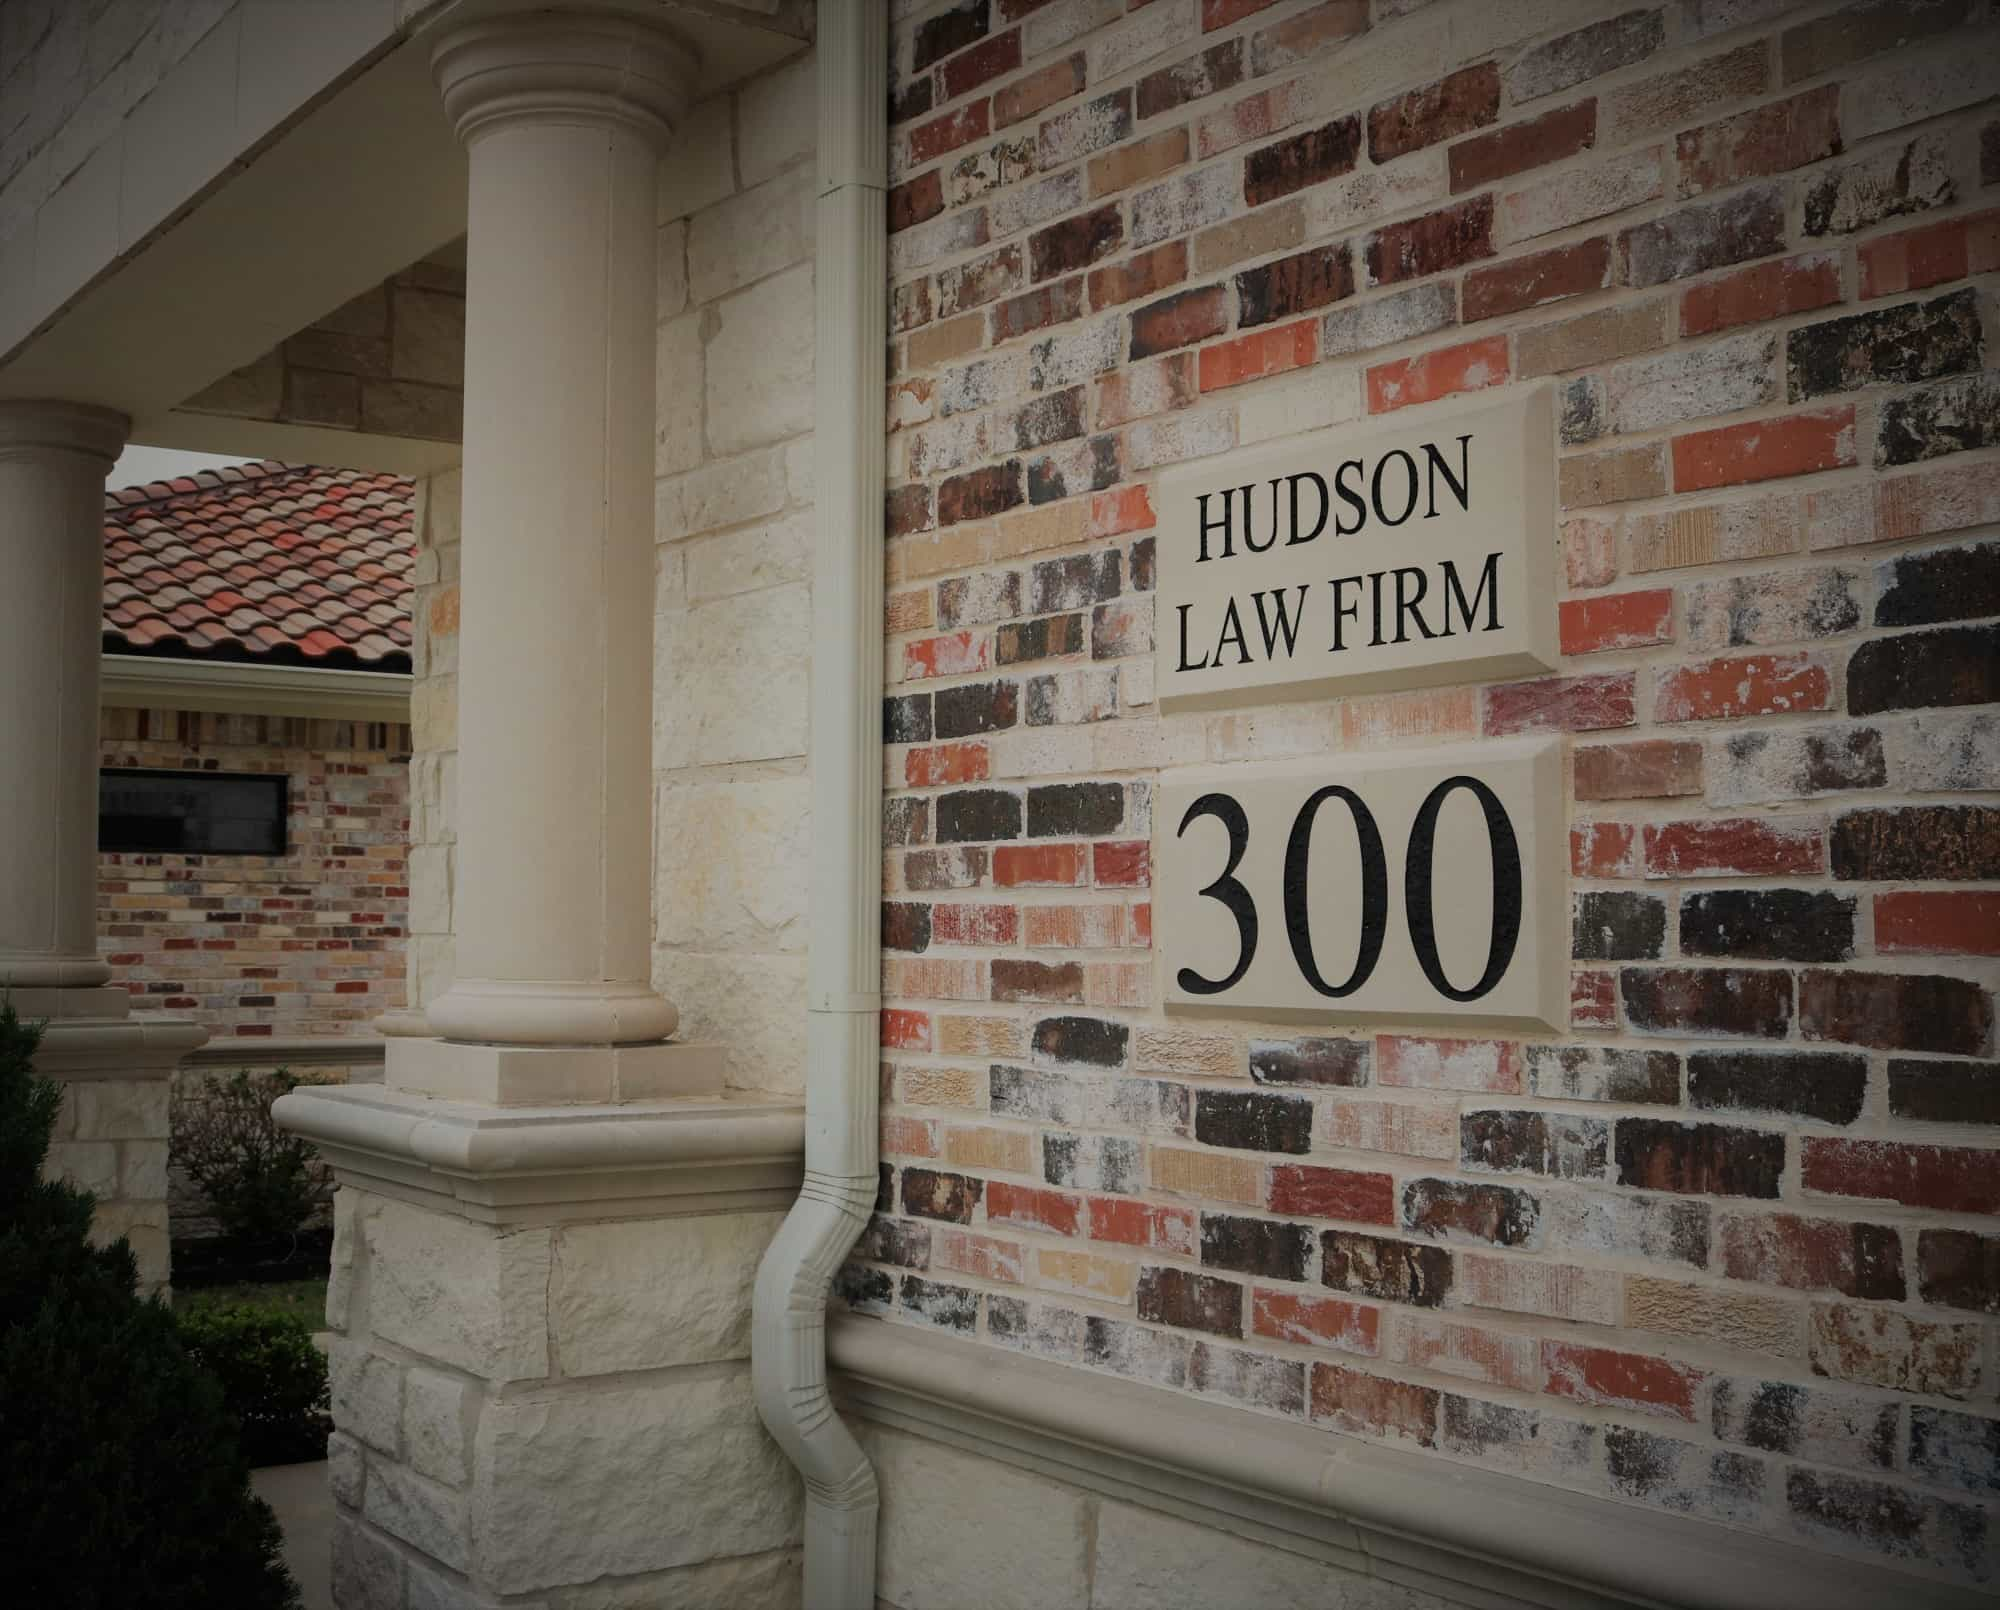 hudson law firm building